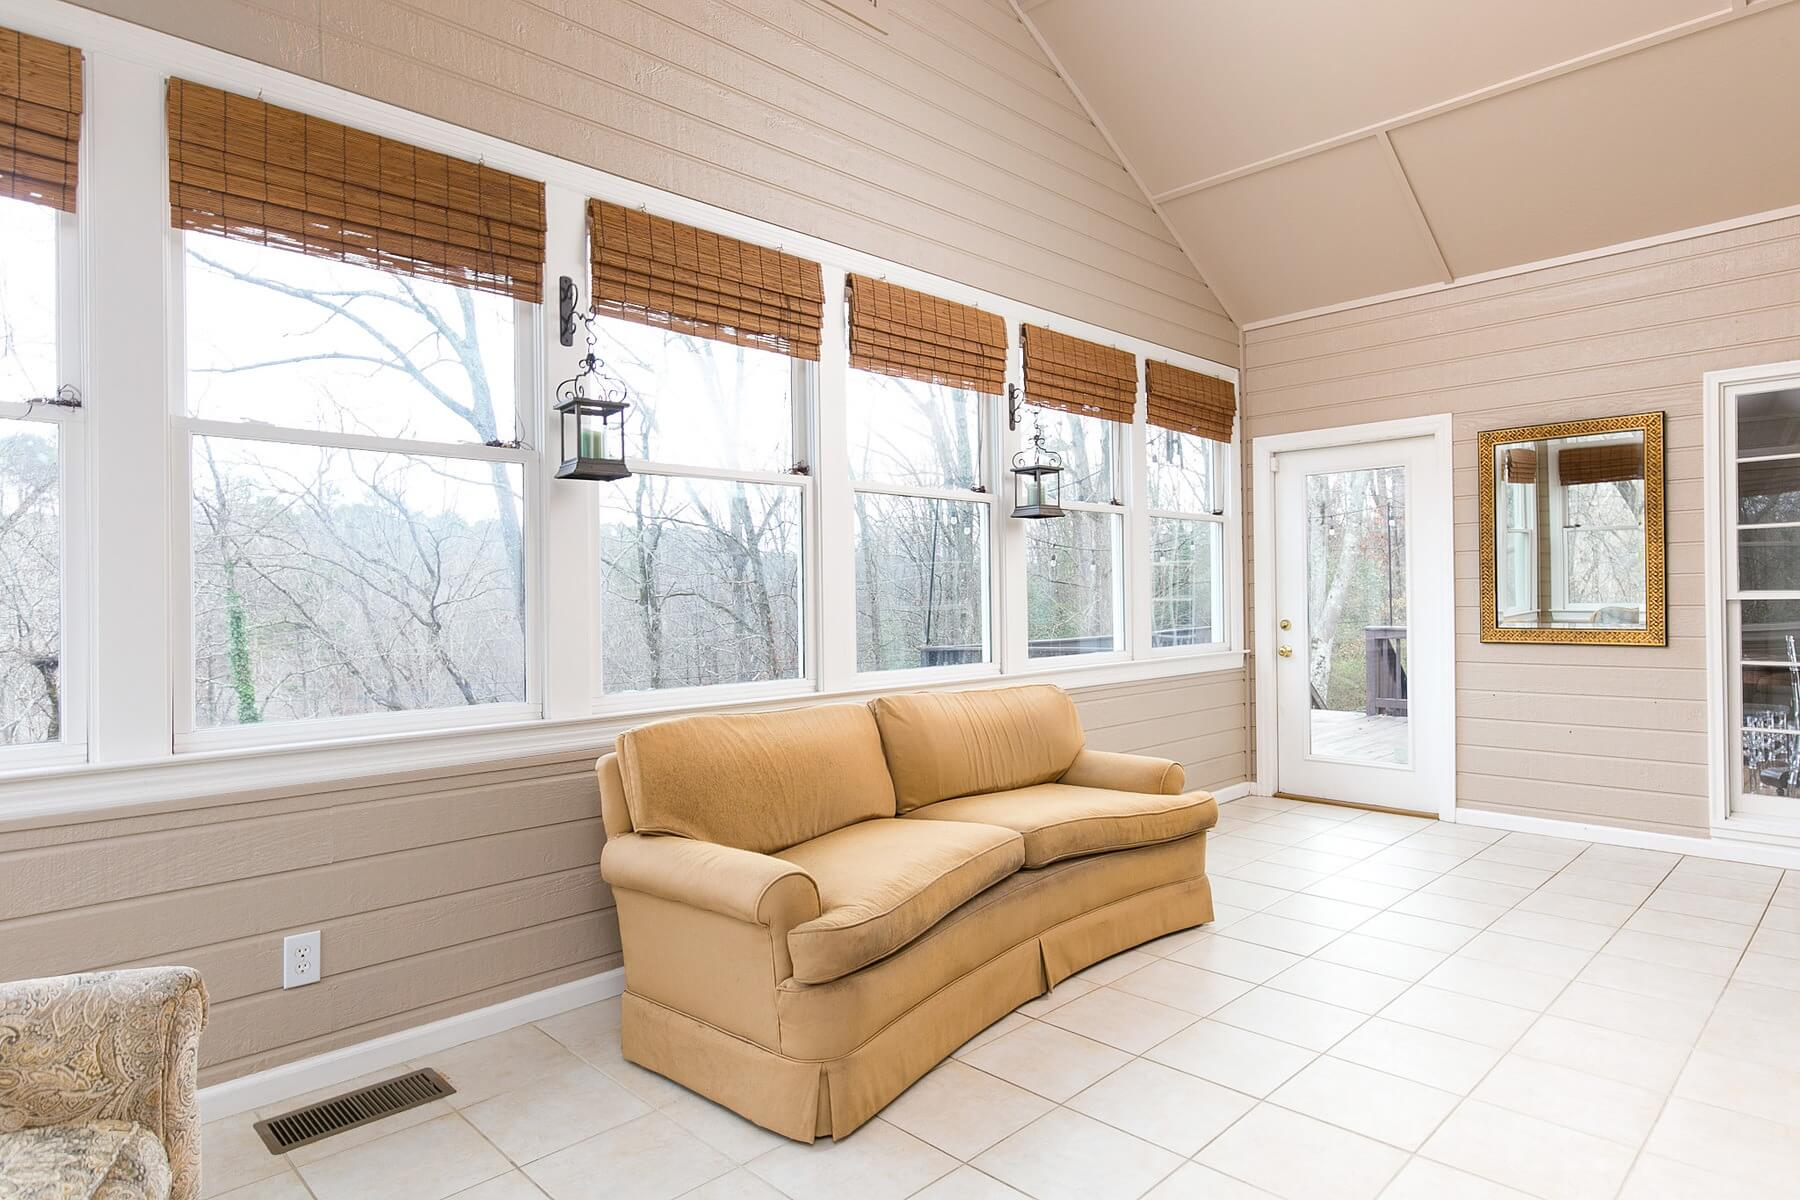 The wall of windows and pitched ceiling in this gorgeous sunroom are to-die-for!